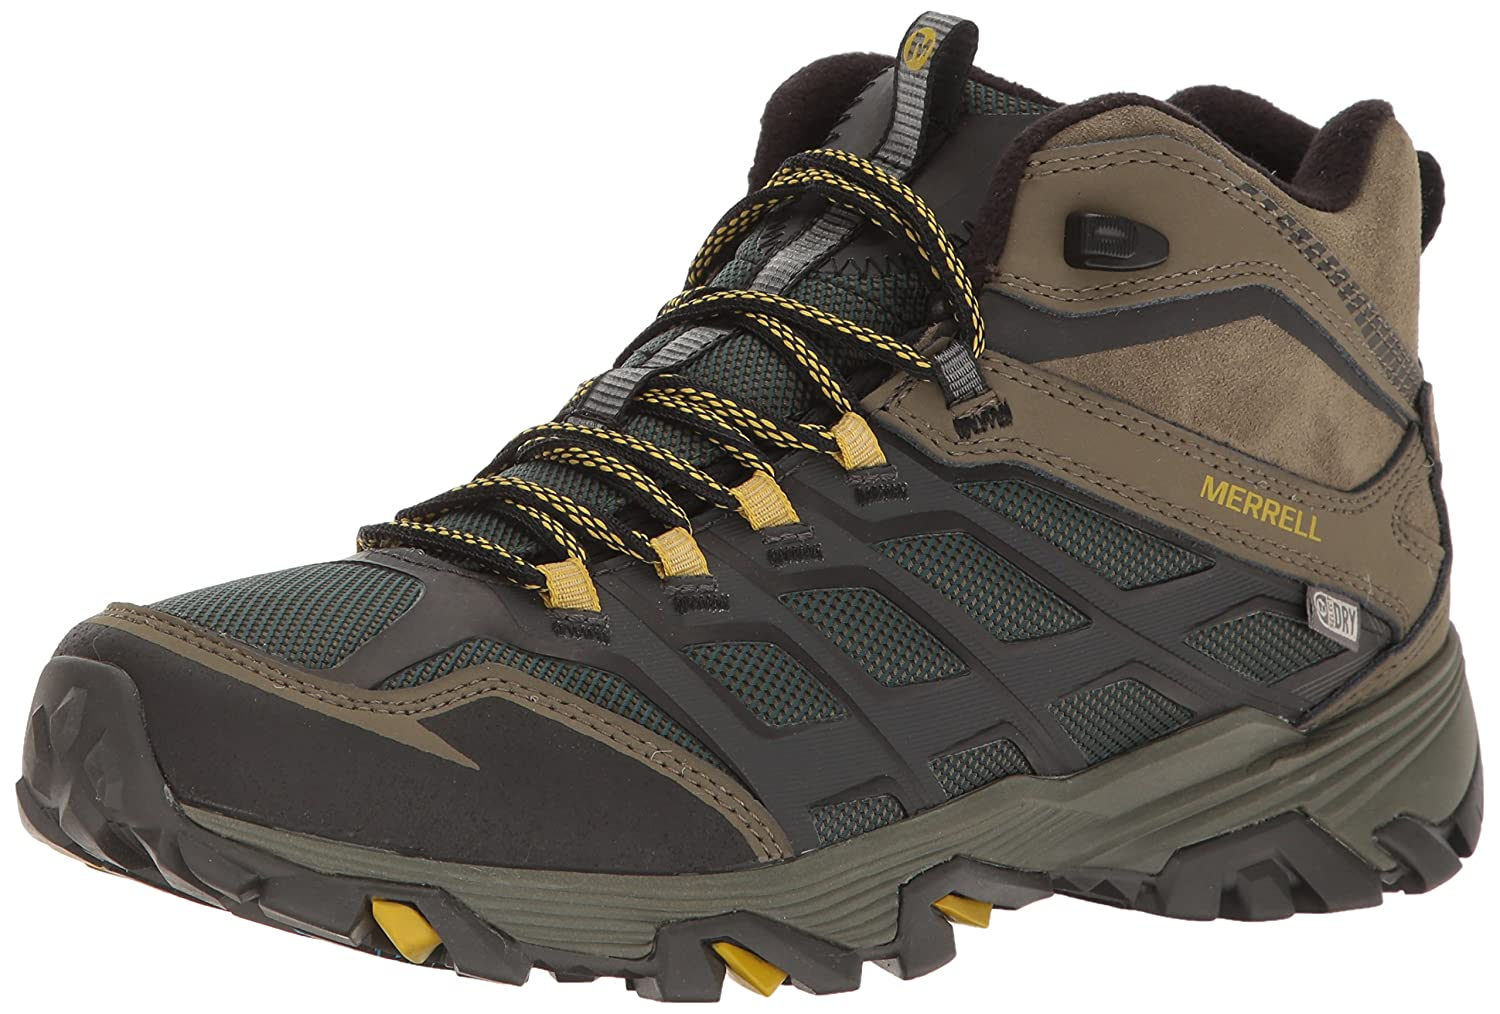 Merrell Men's Moab FST Ice+ Thermo Hiking Boot 9.5 D(M) US|Pine Grove/Olive